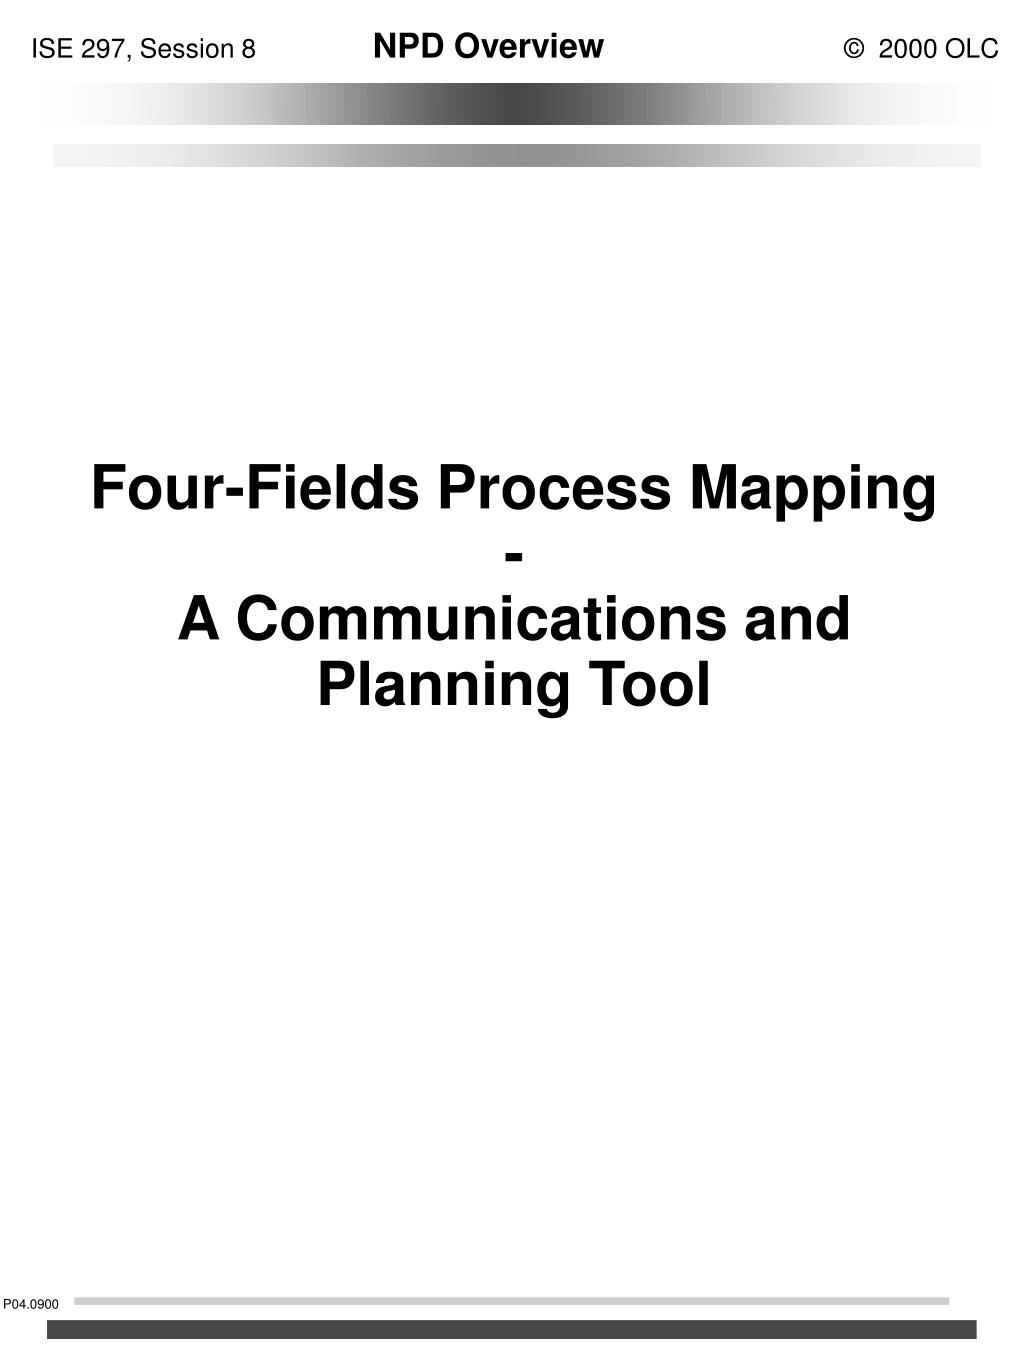 ppt four fields process mapping a communications and planning